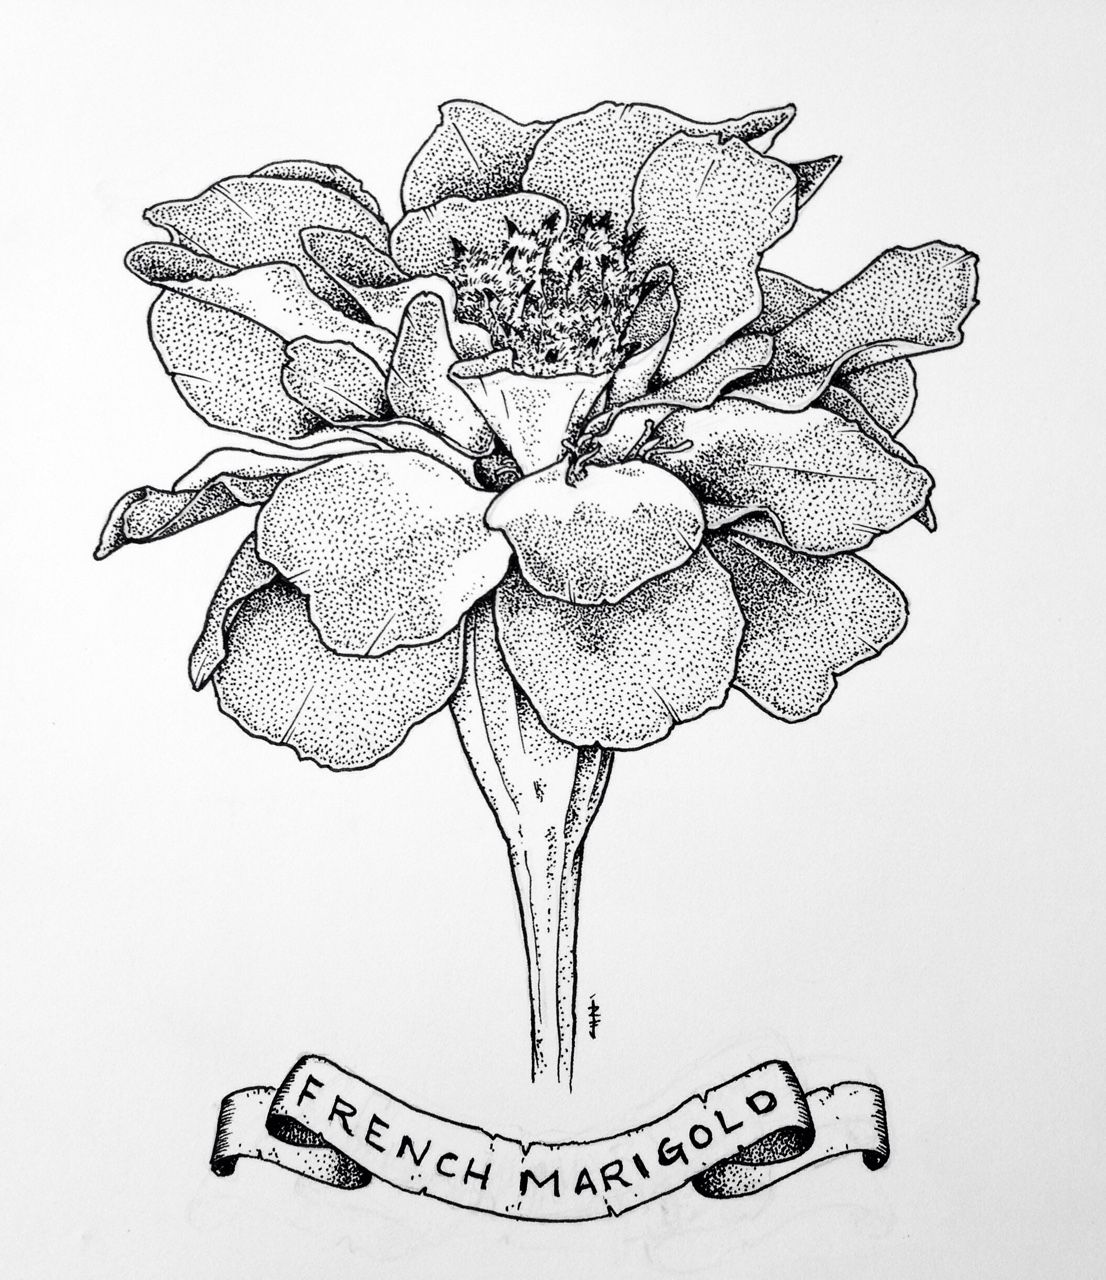 Marigold Flower Line Drawing : Marigold flower tattoo drawing imgkid the